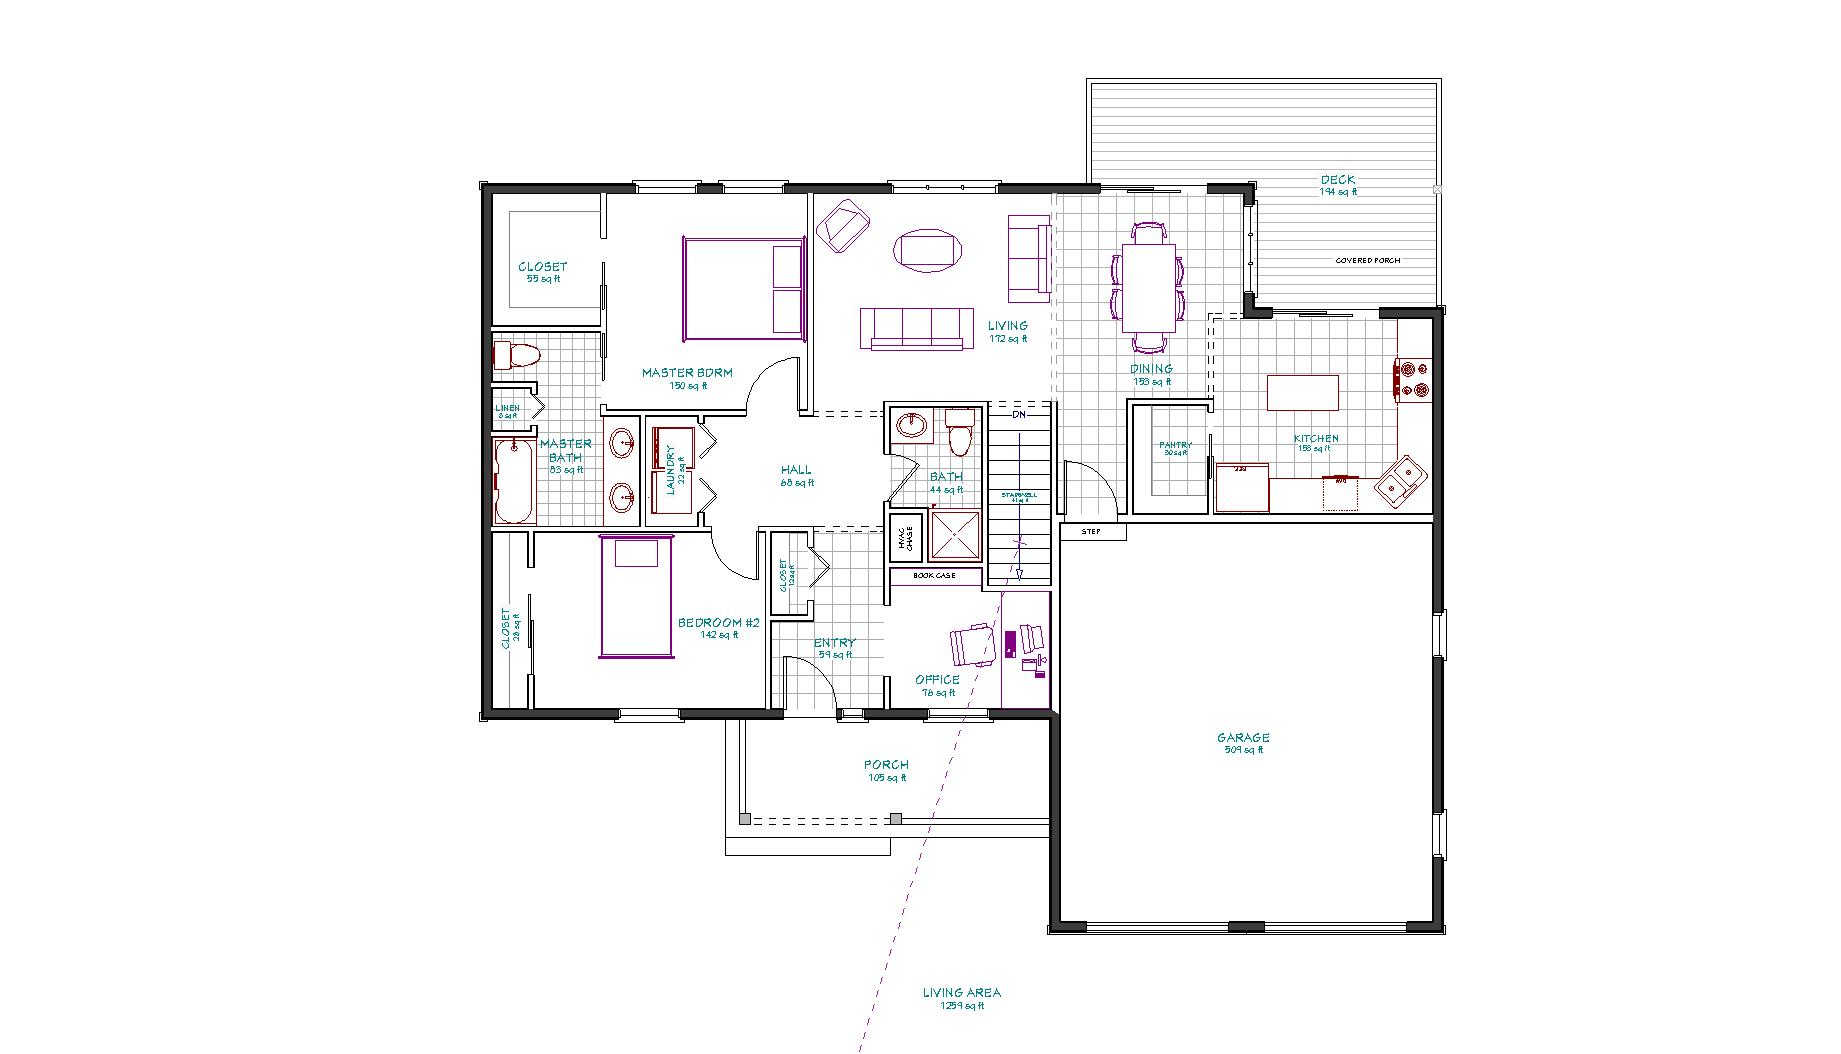 2000sq foot country house plans house plans home designs for 2000 square foot floor plans